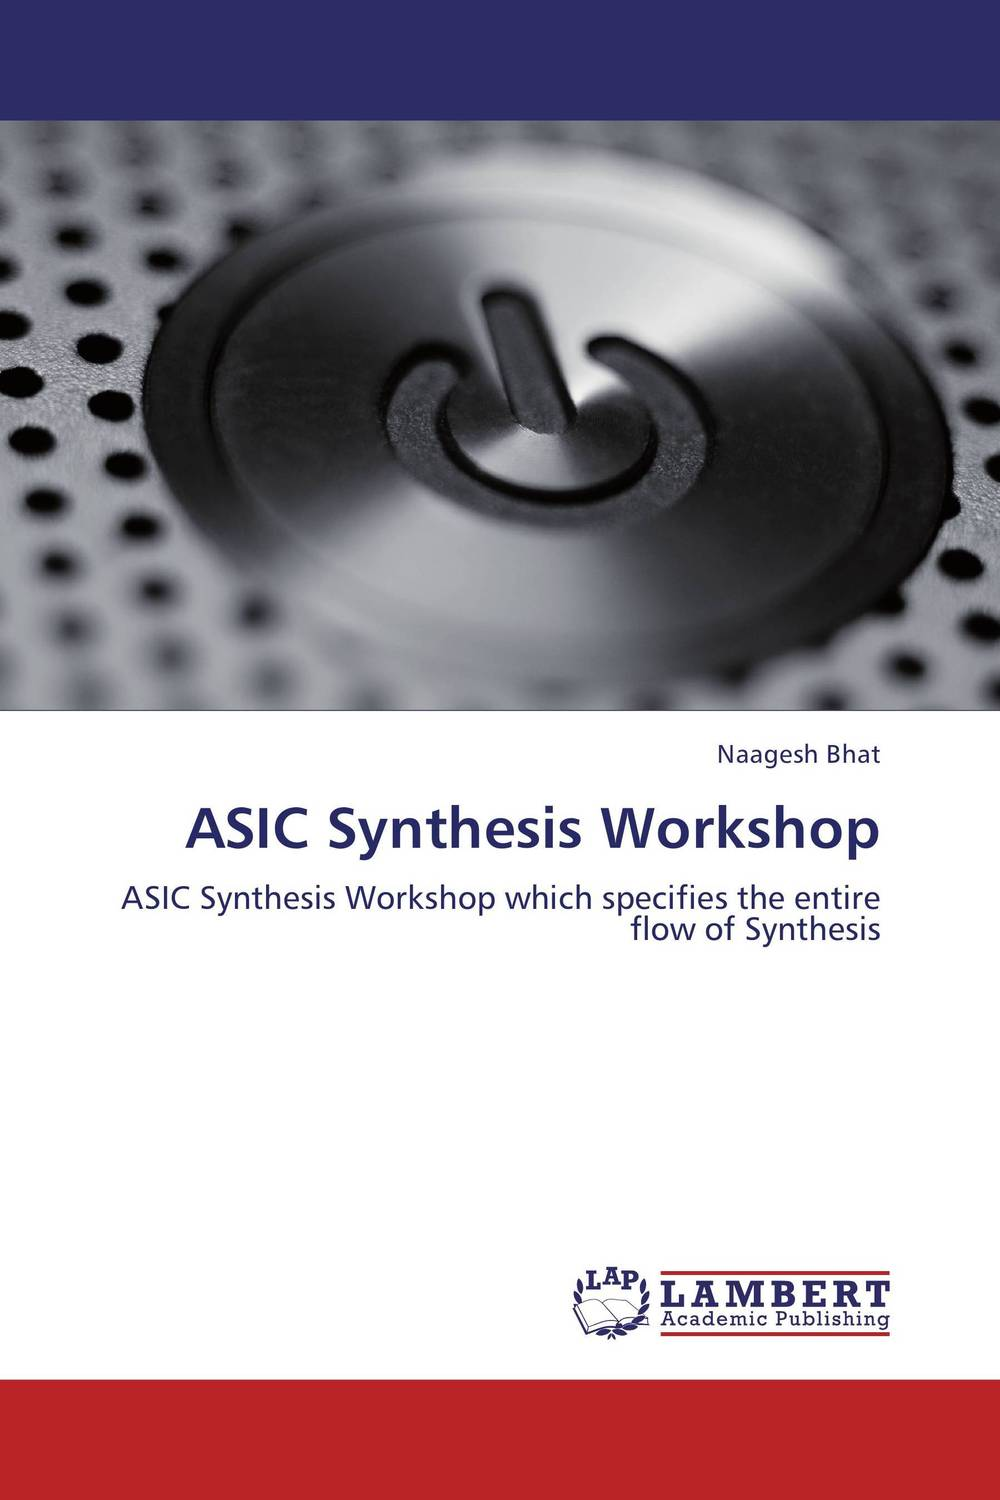 ASIC Synthesis Workshop